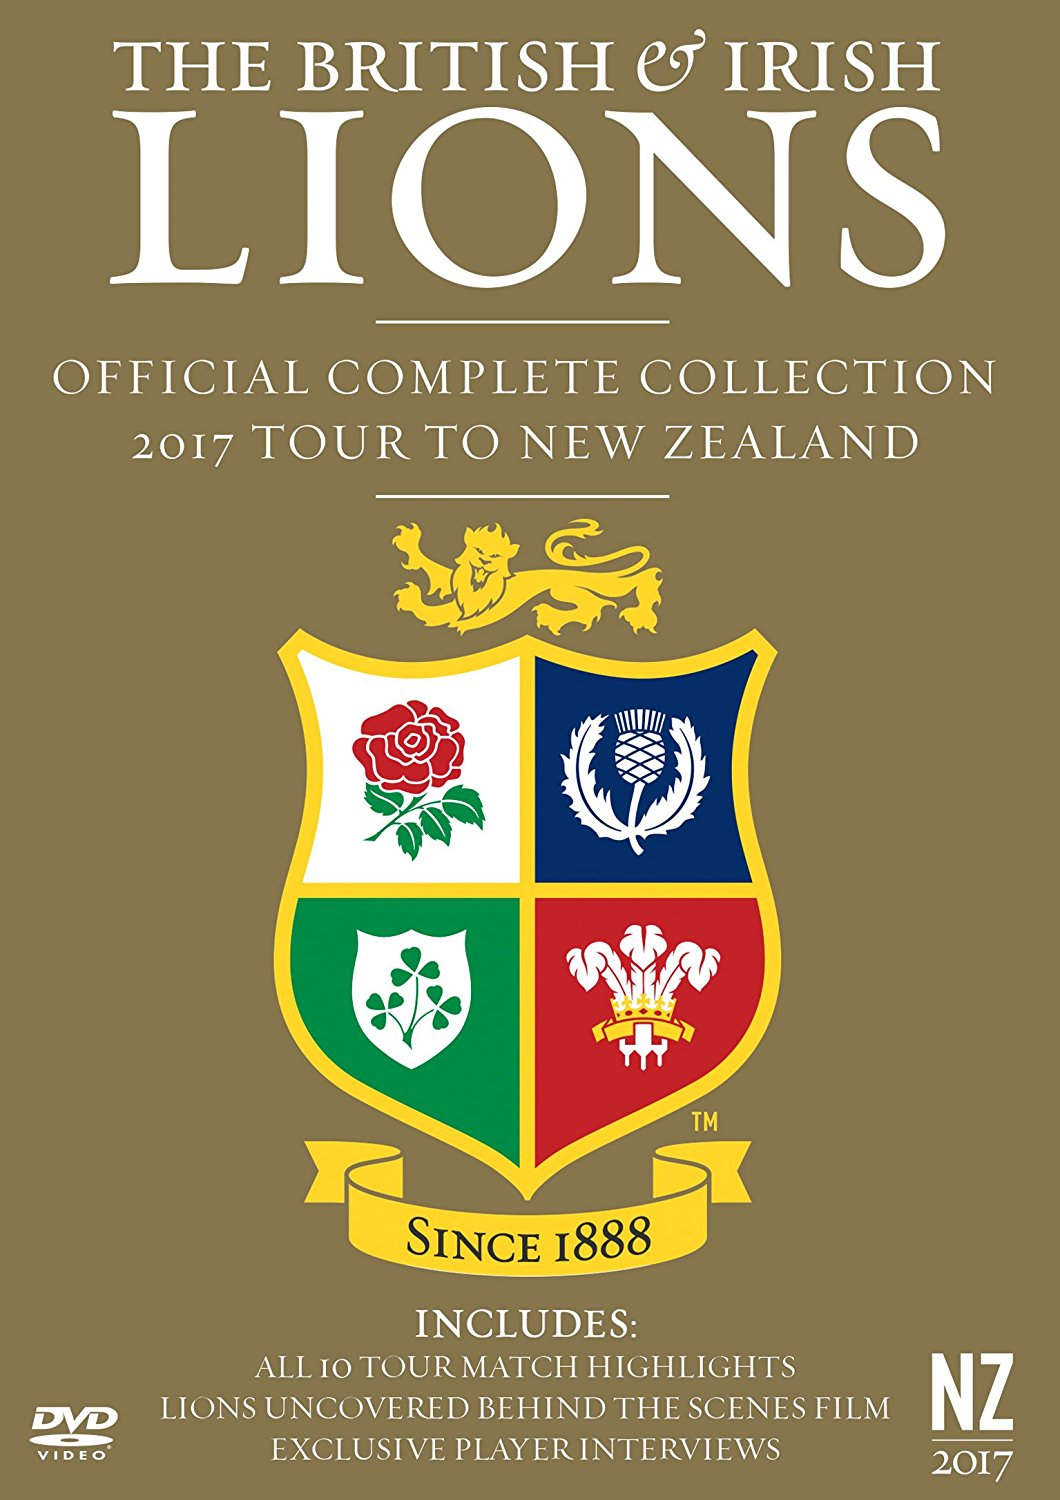 British and Irish Lions: Official Complete Collection, 2017 Tour to New Zealand